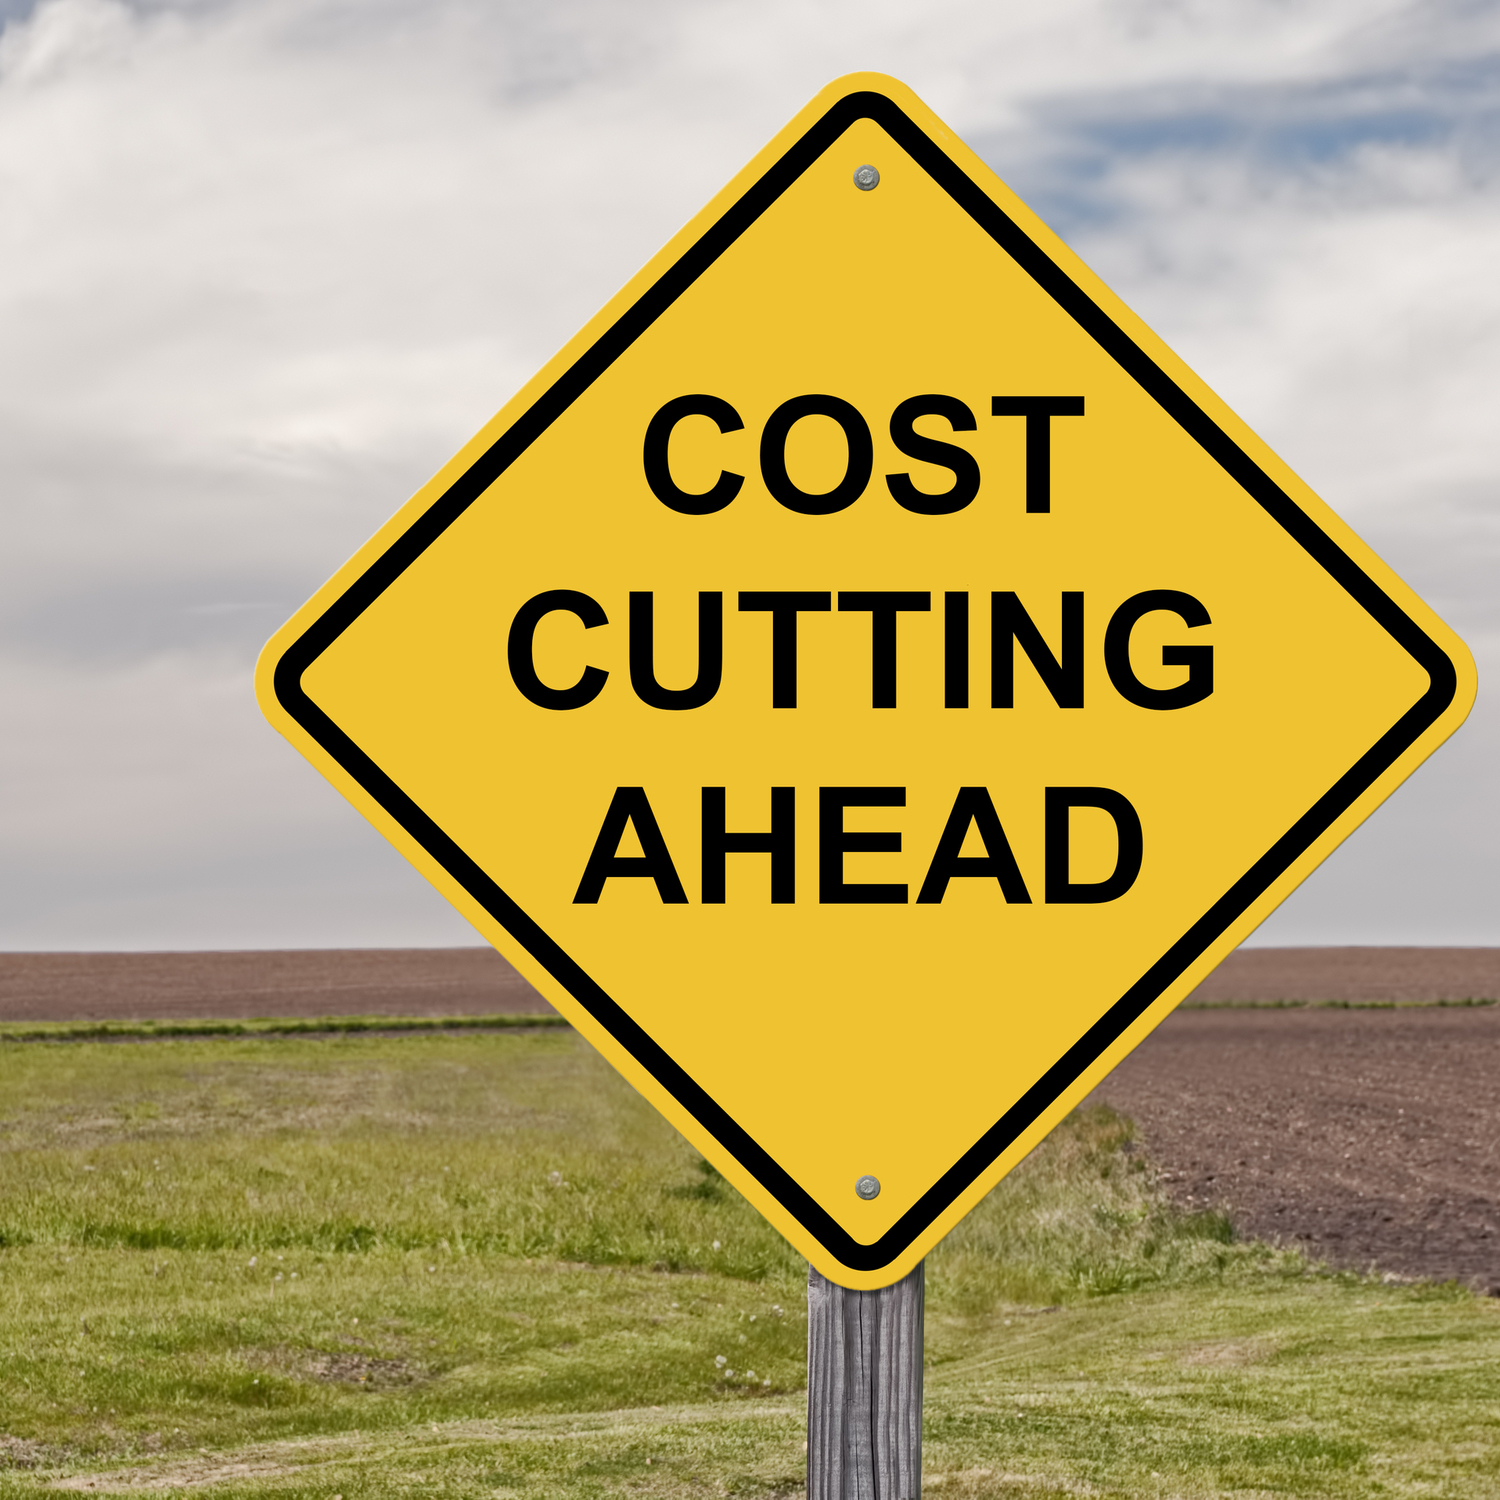 3 Ways to Reduce Operational Costs - business.com